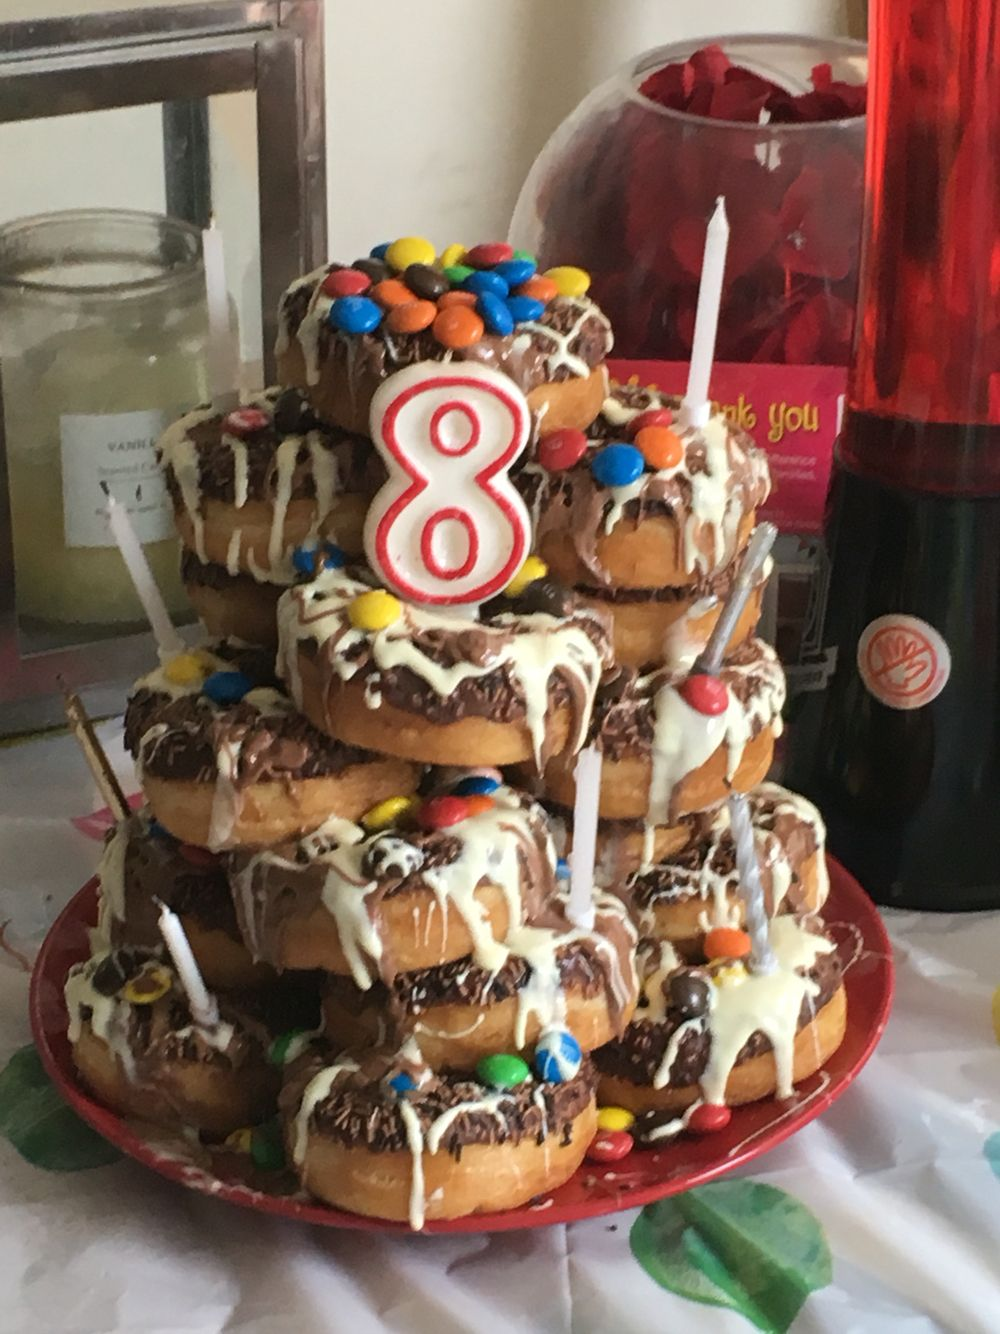 When your kid wants a chocolate donut tower instead of a cake